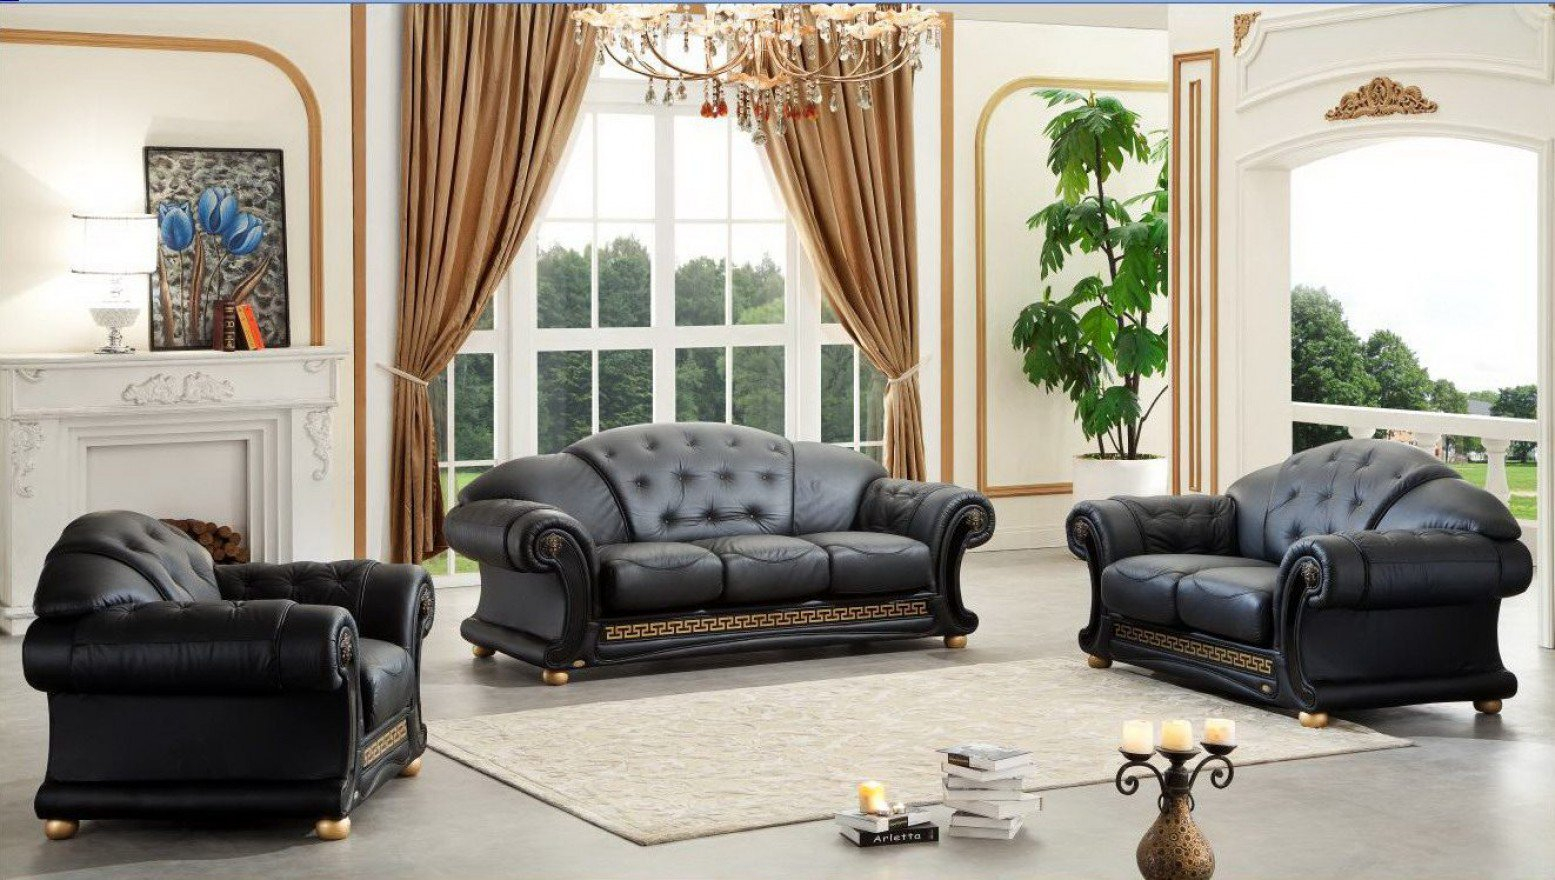 Apolo Leathersplit Living Room Set Esf Furniture Sohomod pertaining to 12 Genius Ways How to Upgrade Living Room Sets Leather